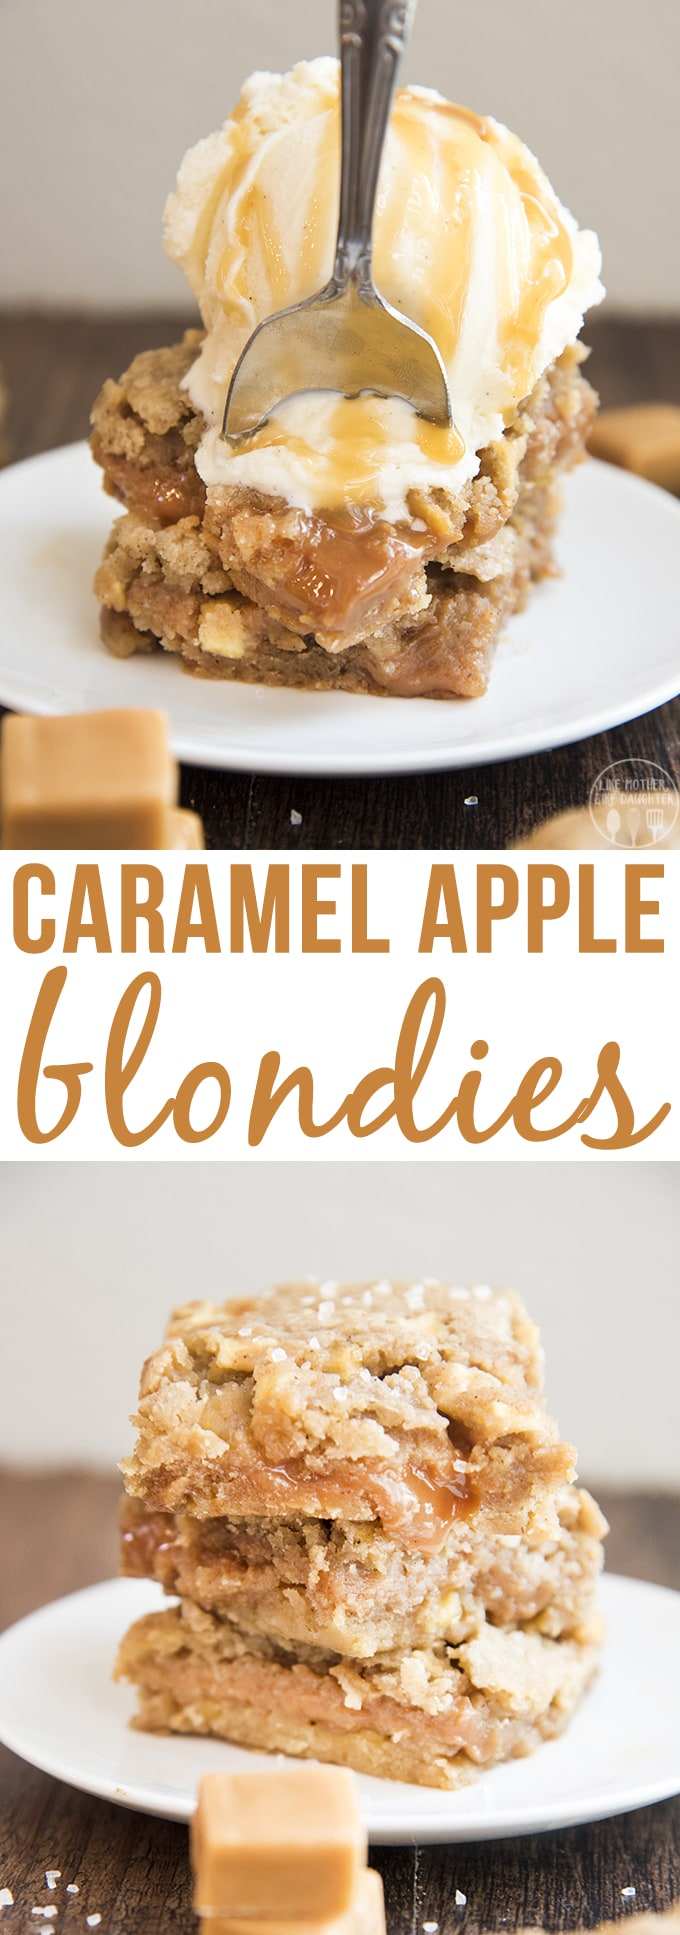 Caramel apple blondies are a delicious brown sugar blondie stuffed full of apple pieces and lots of gooey caramel for a perfect fall dessert!